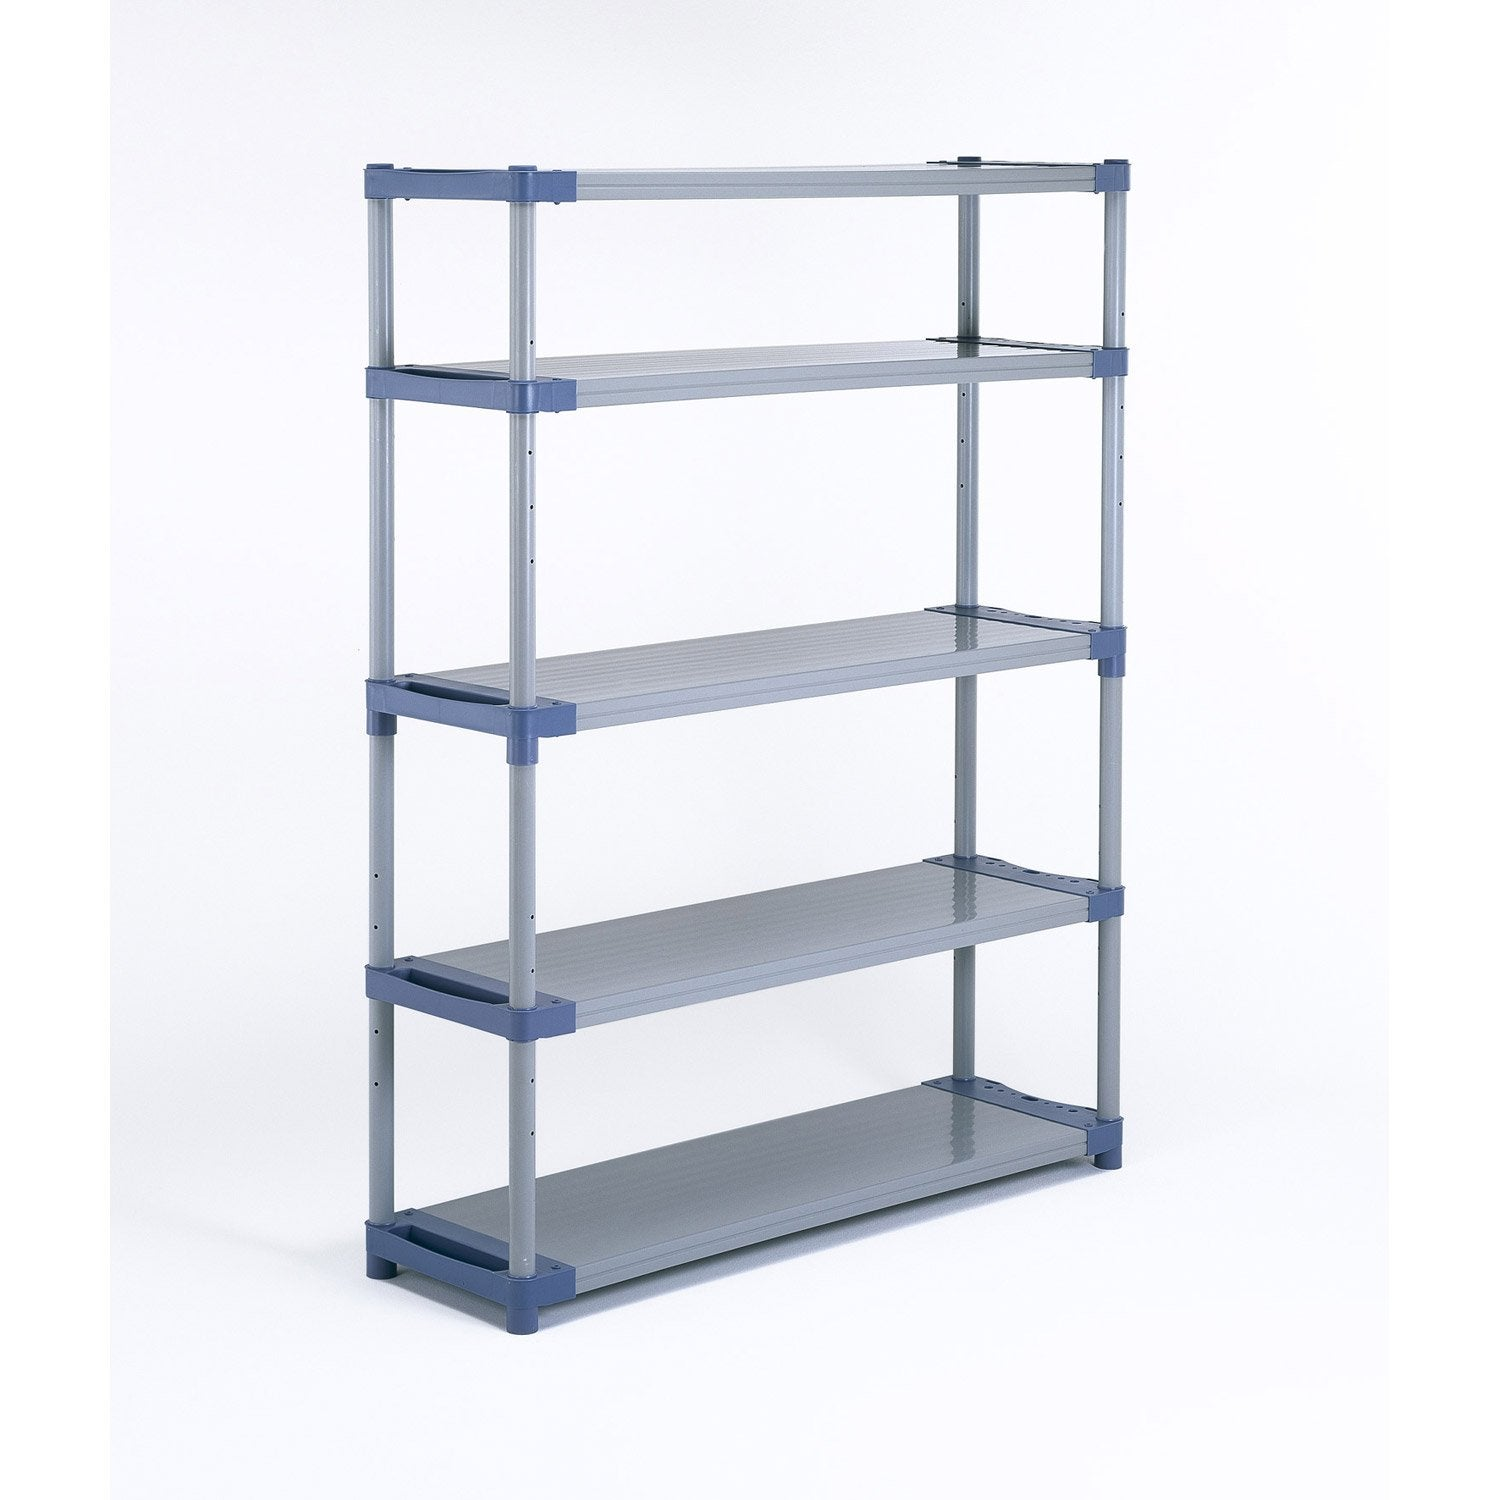 Etag re r sine grosfillex 5 tablettes gris bleu for Leroy merlin etagere salle de bain